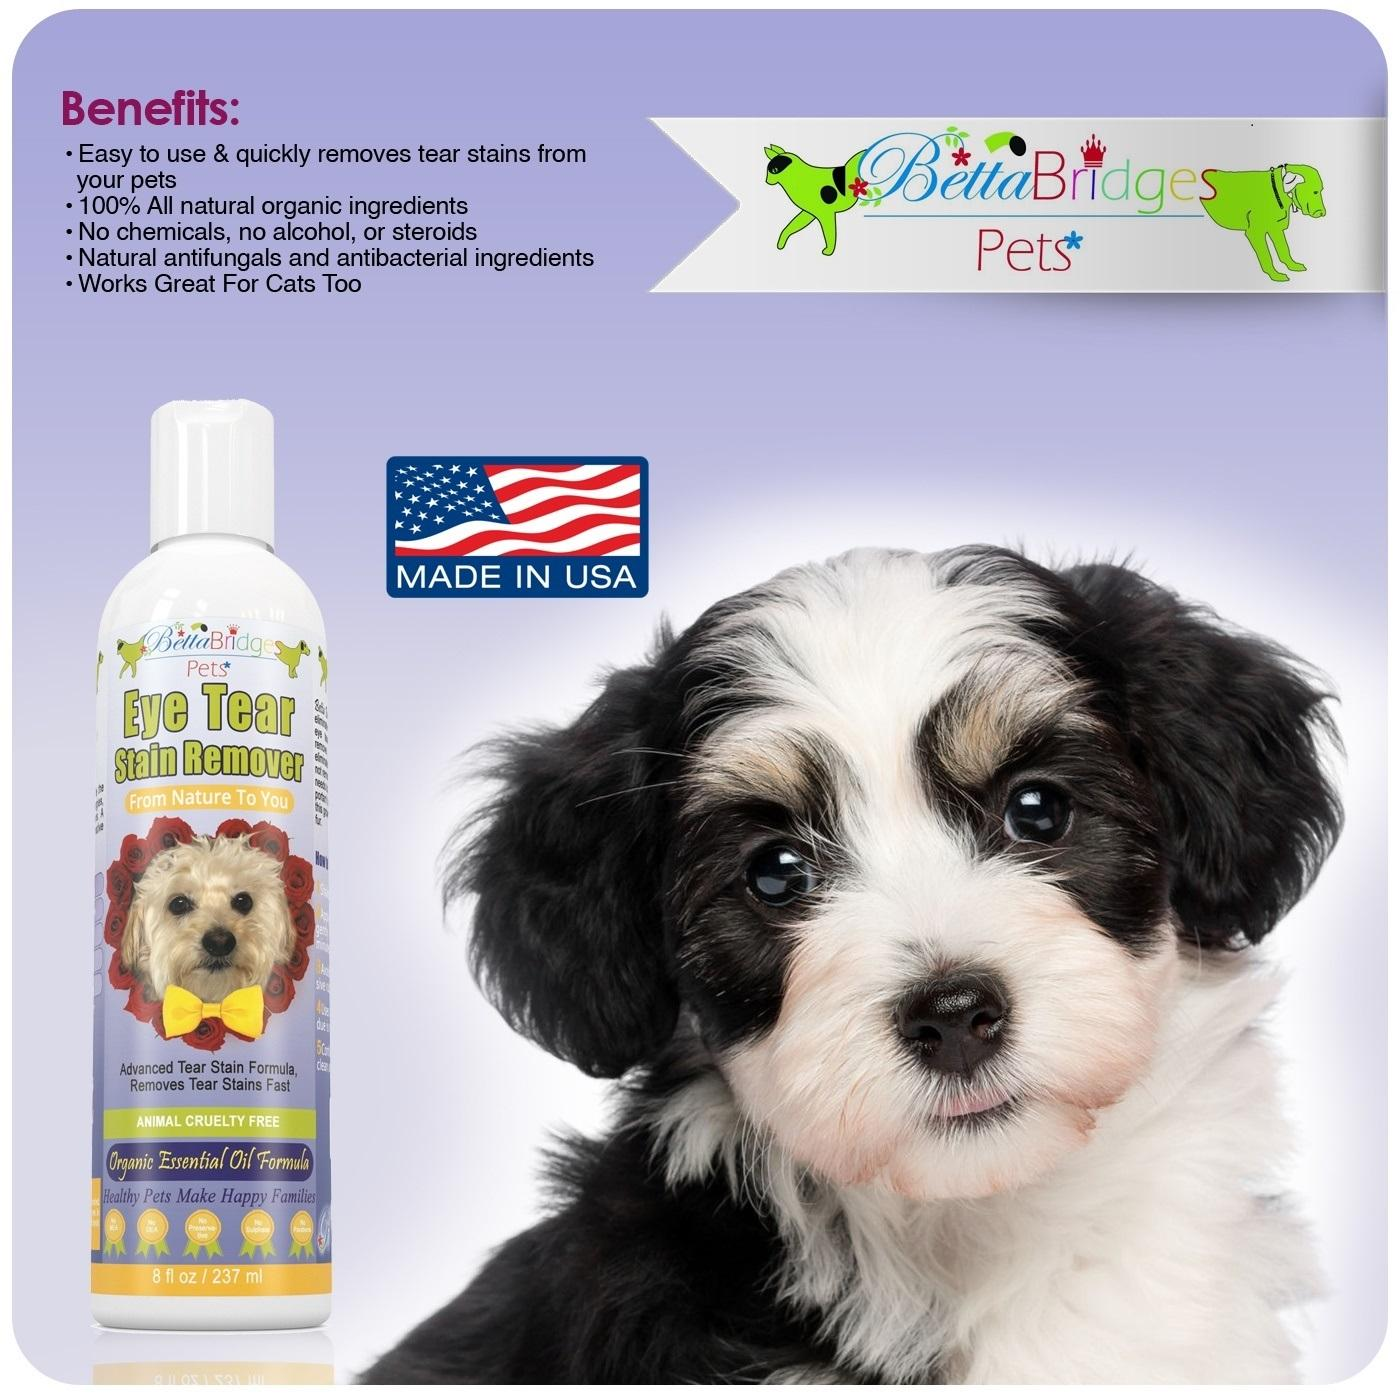 Betta Bridges Pets Natural Tear Stain Remover For Dogs